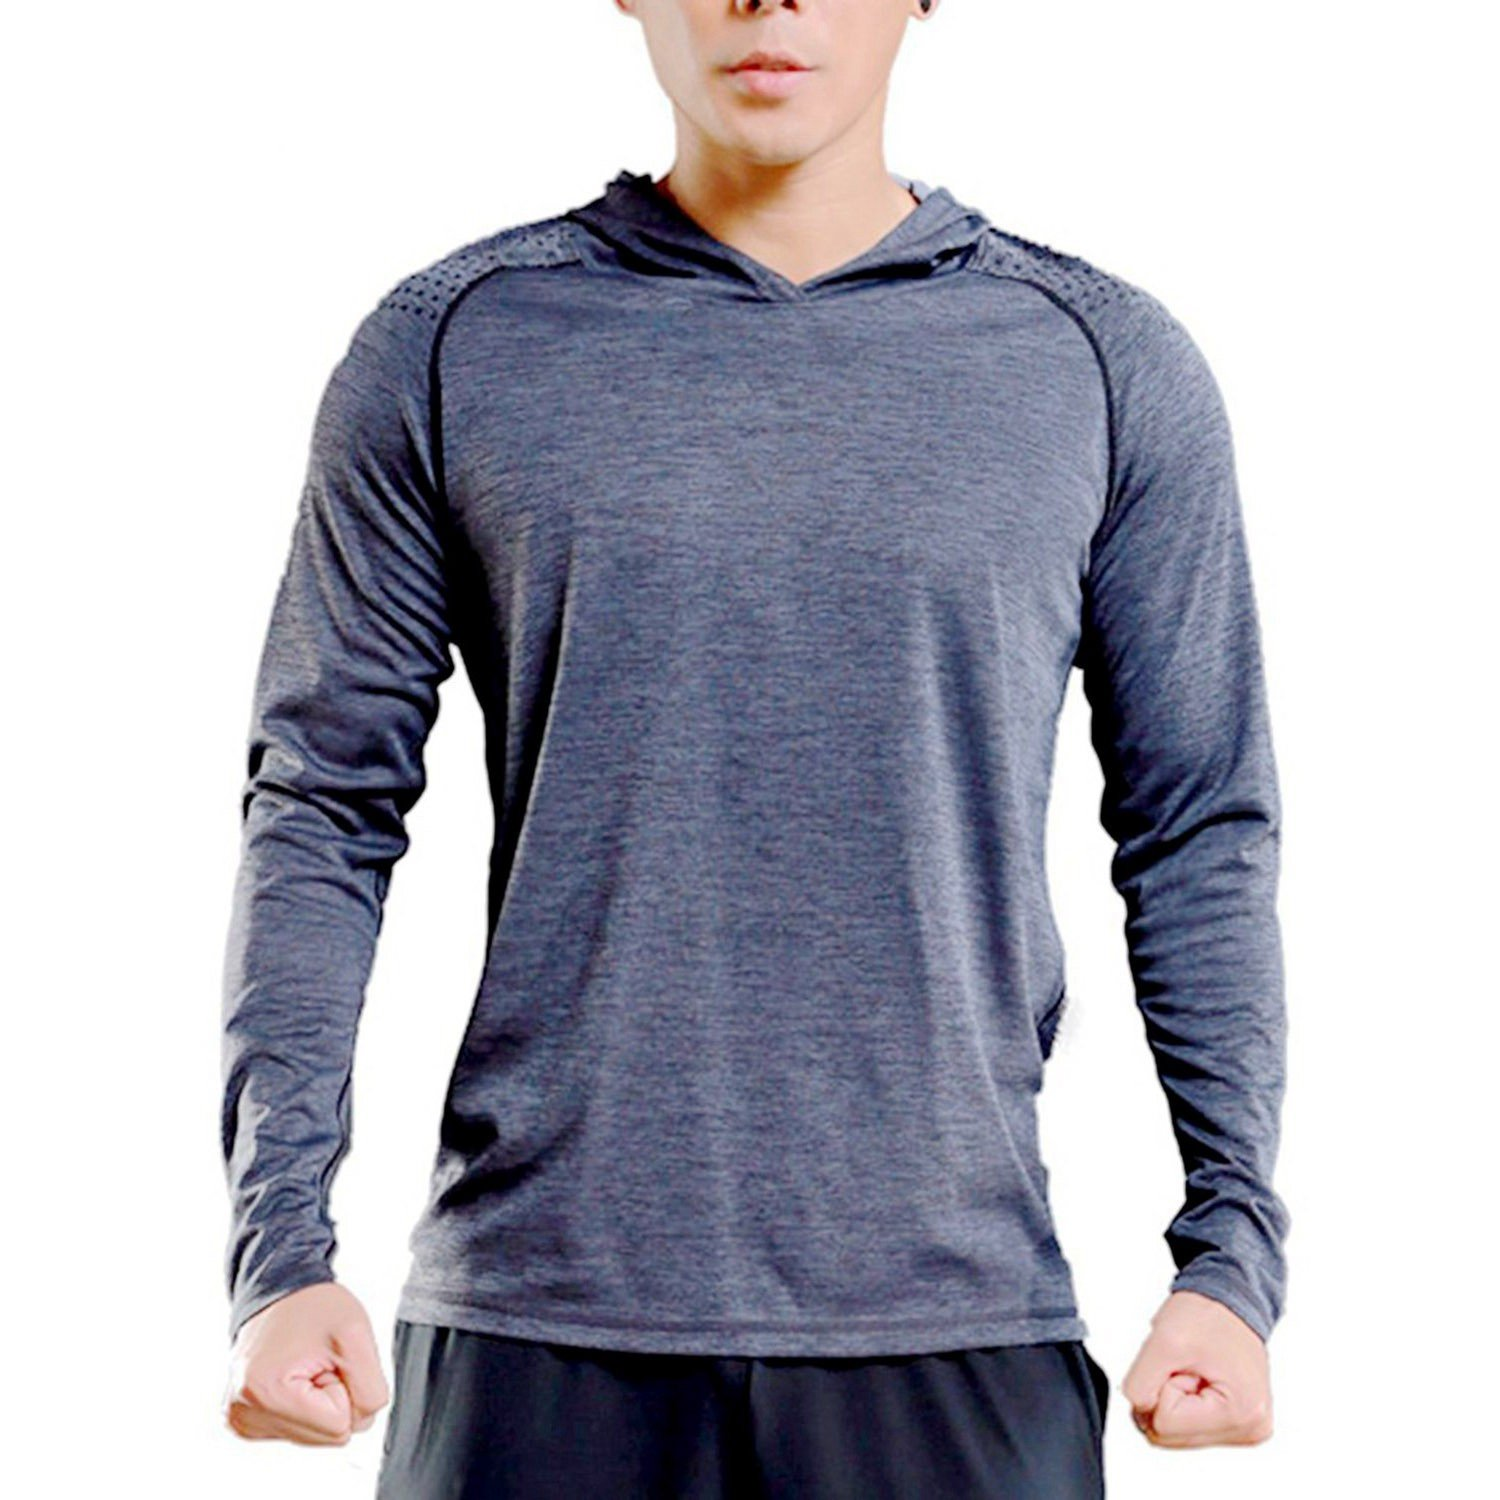 TBMPOY Men's Hooded Muscle Bodybuilding Sports Tops Running Training Activewear(01 Grey,us L)